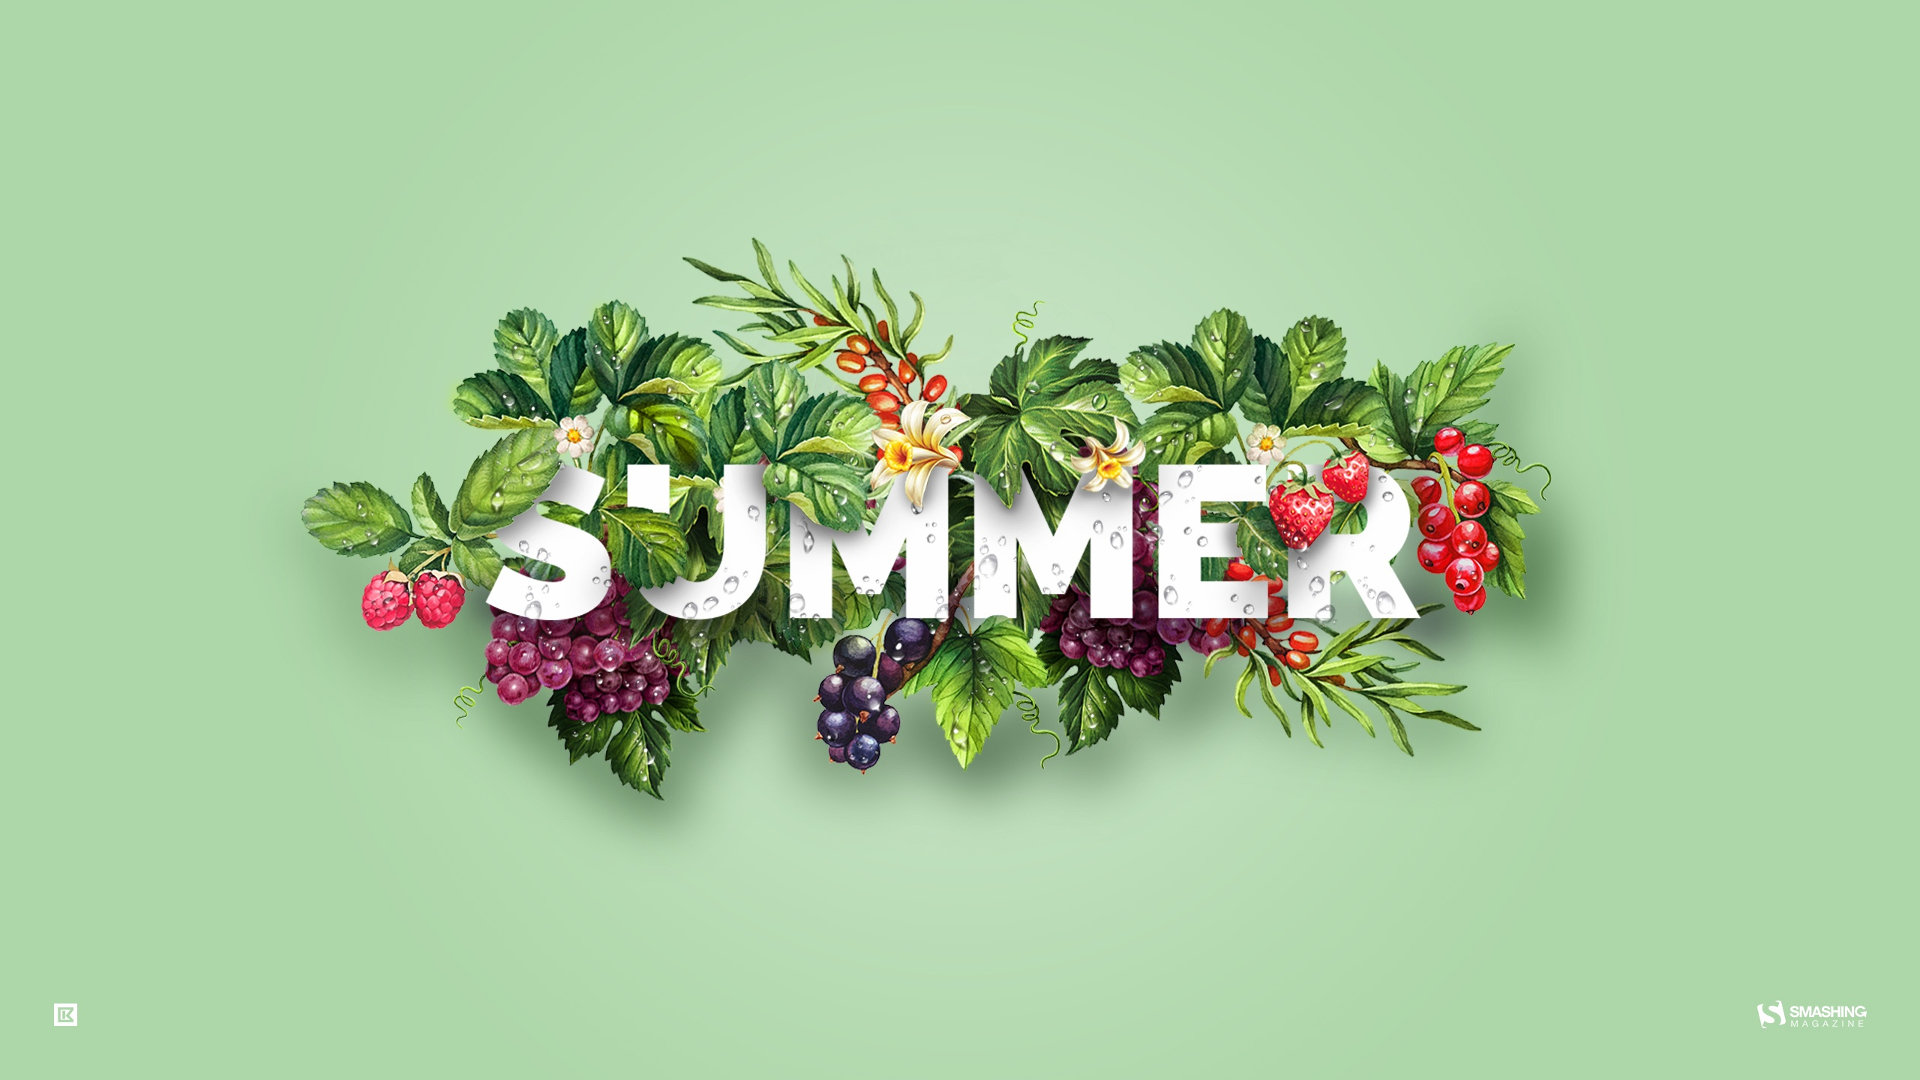 Summer Wallpapers 1920x1080 Full Hd 1080p Desktop Backgrounds